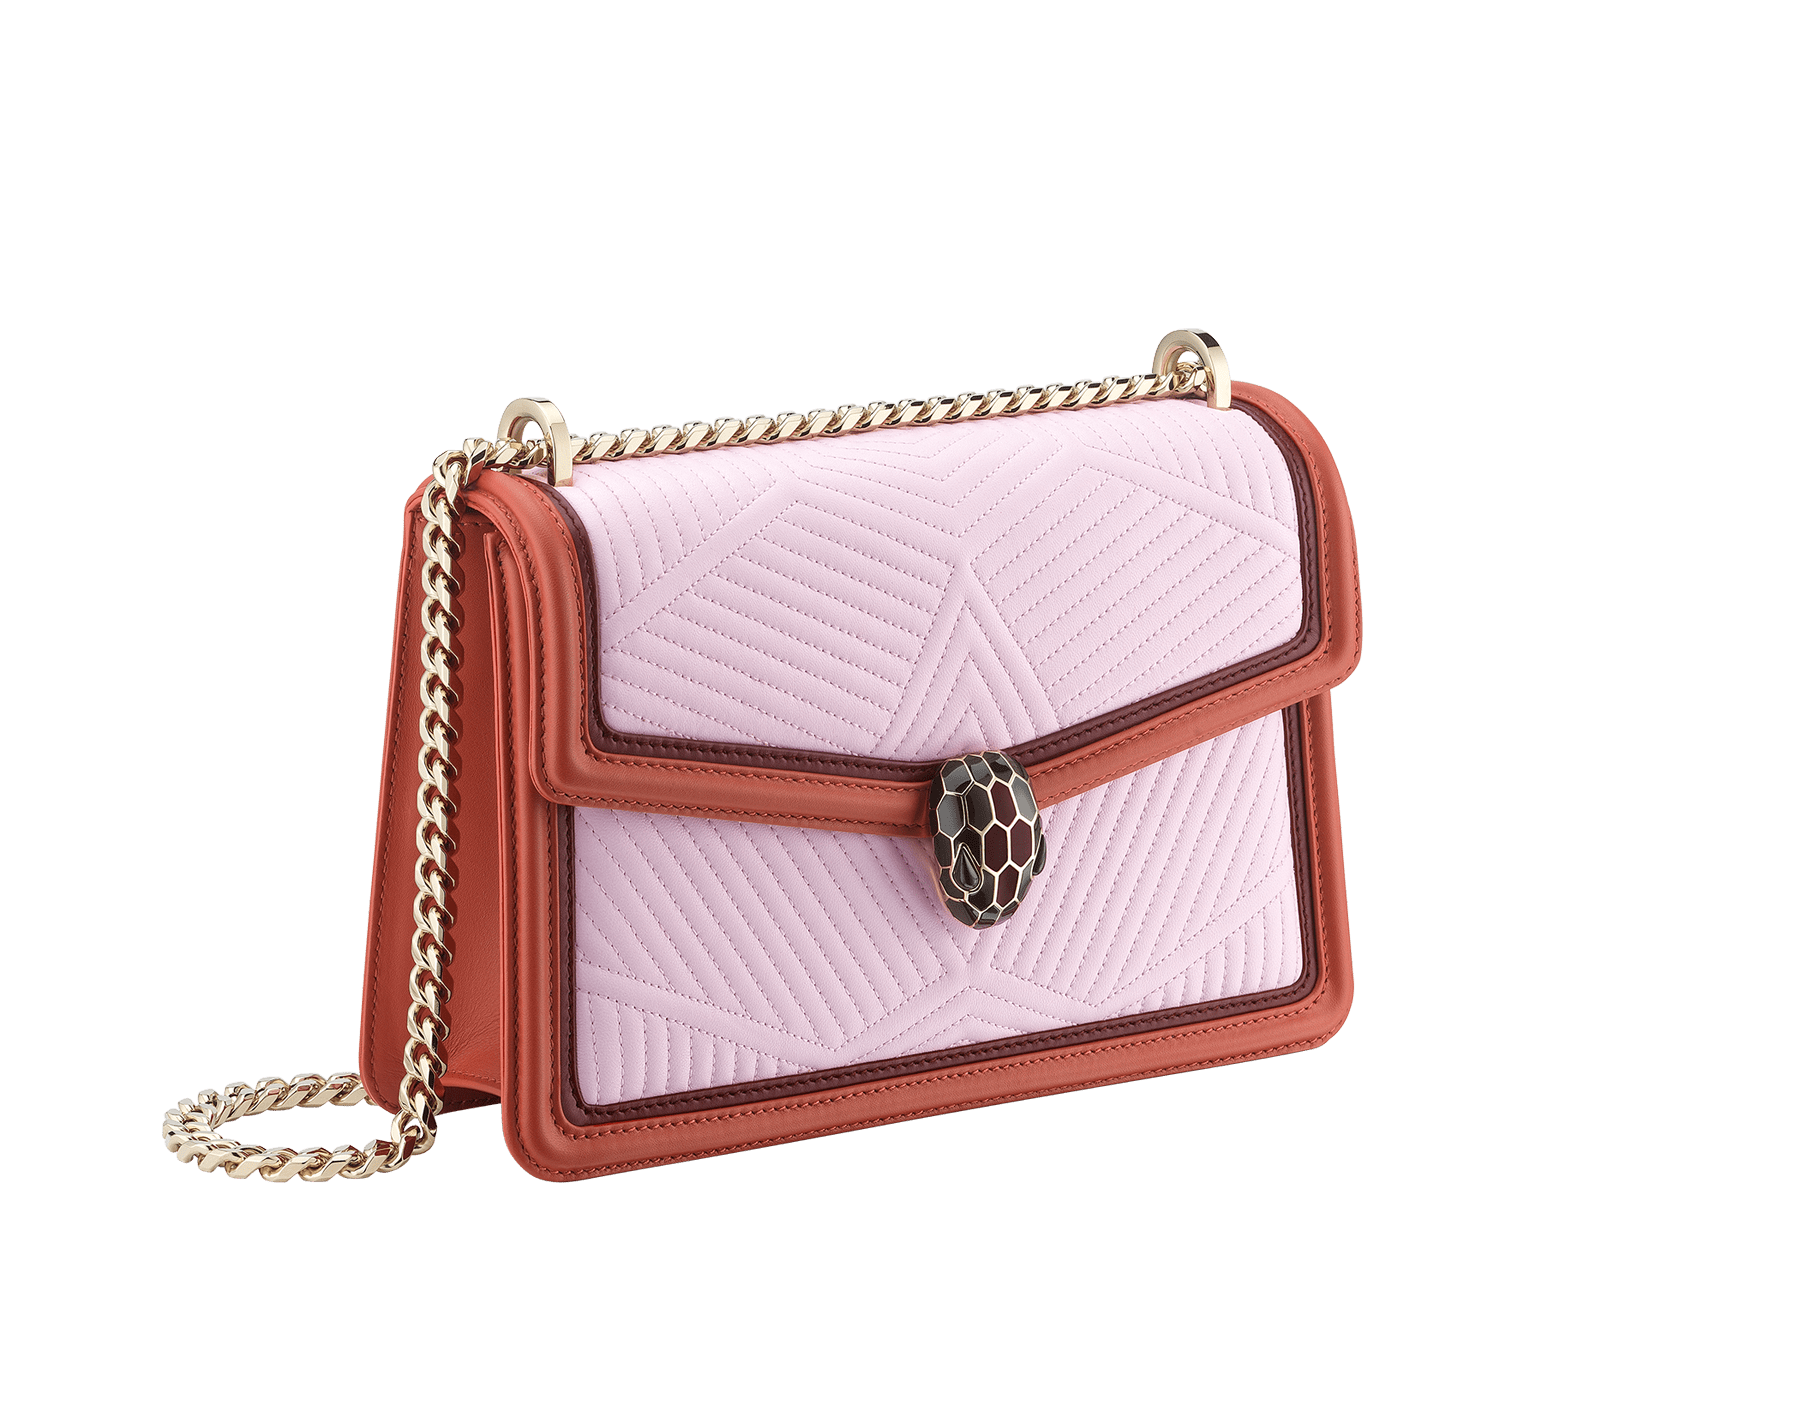 Serpenti Diamond Blast shoulder bag with rosa di francia quilted nappa leather body and imperial topaz and Roman garnet calf leather frames. Iconic snakehead closure in light gold plated brass embellished with Roman garnet and black enamel and black onyx eyes. 288829 image 2